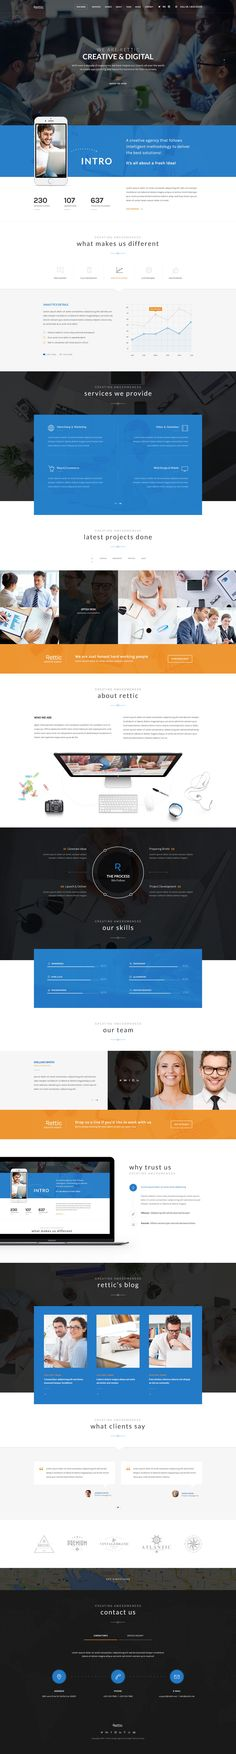 Buy Rettic - Multipurpose PSD Template by Templines on ThemeForest. Rettic is a Modern, Unique and Multipurpose One-Page Business PSD Template for Creatives which suits any Corporate, . Web Design Inspiration, Design Ideas, Homepage Web, Clean Websites, Website Designs, Web Layout, Ui Ux Design, Psd Templates, Simple